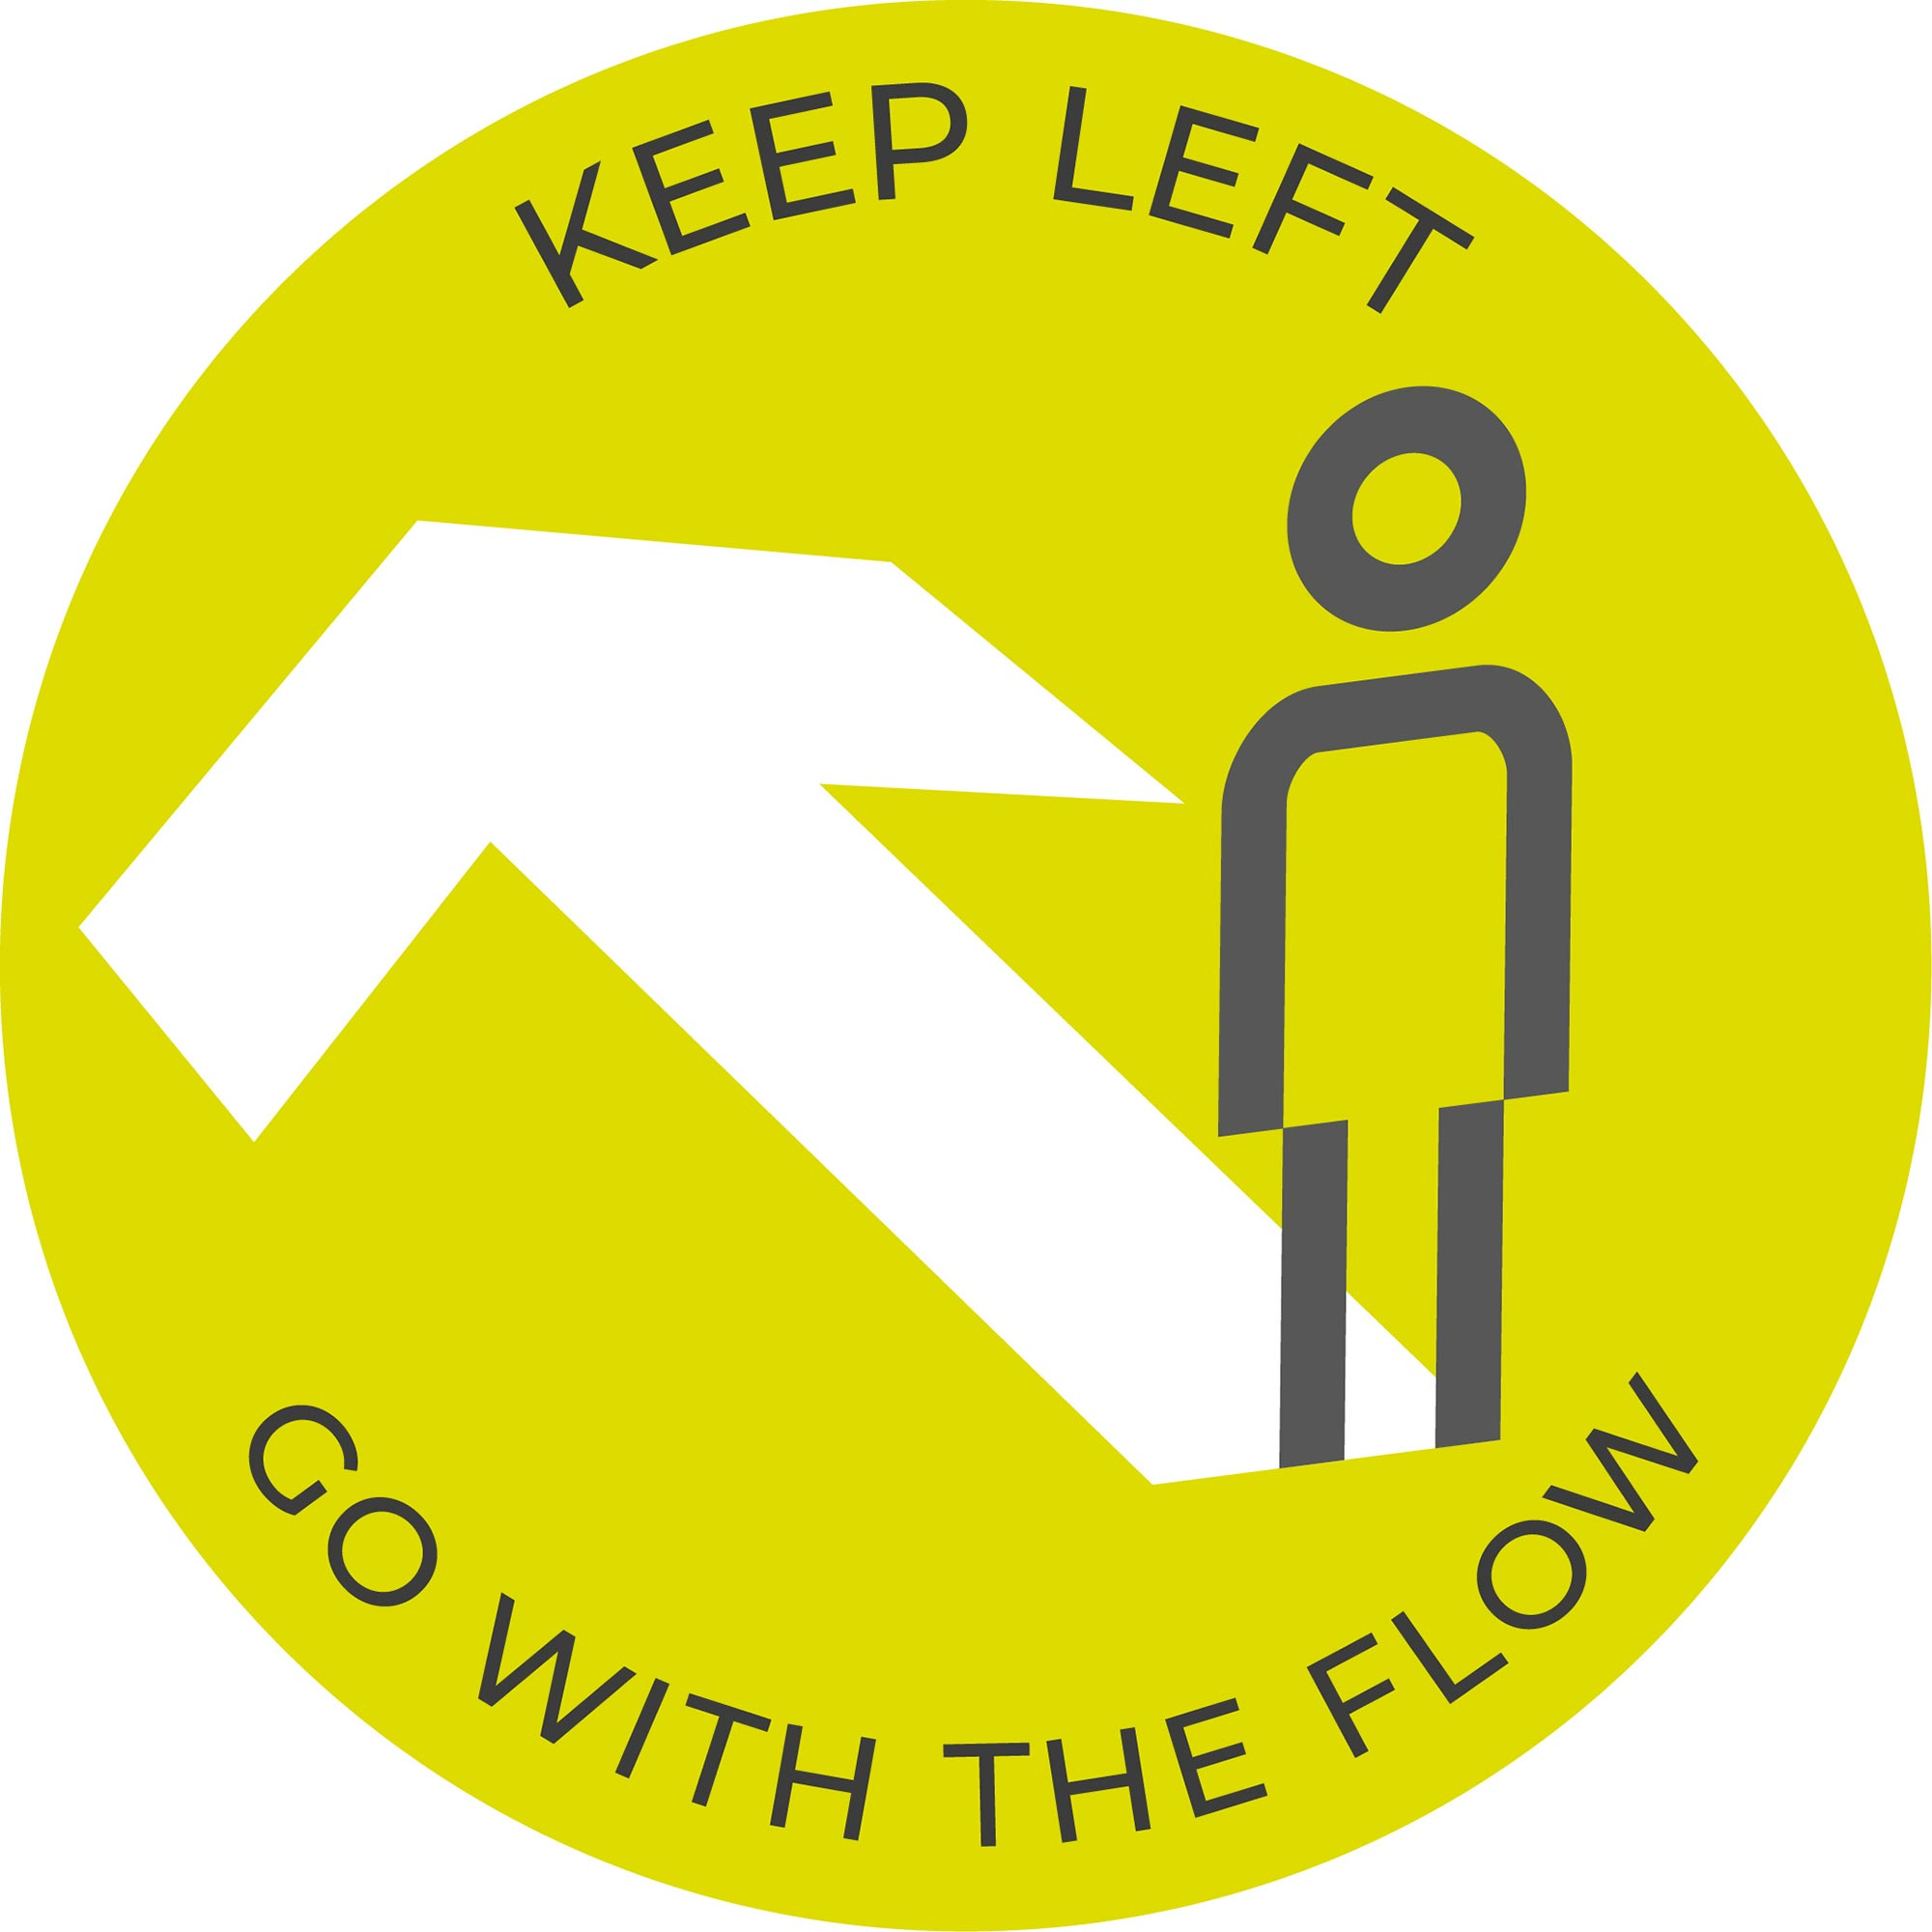 Go with the flow - Green sticker